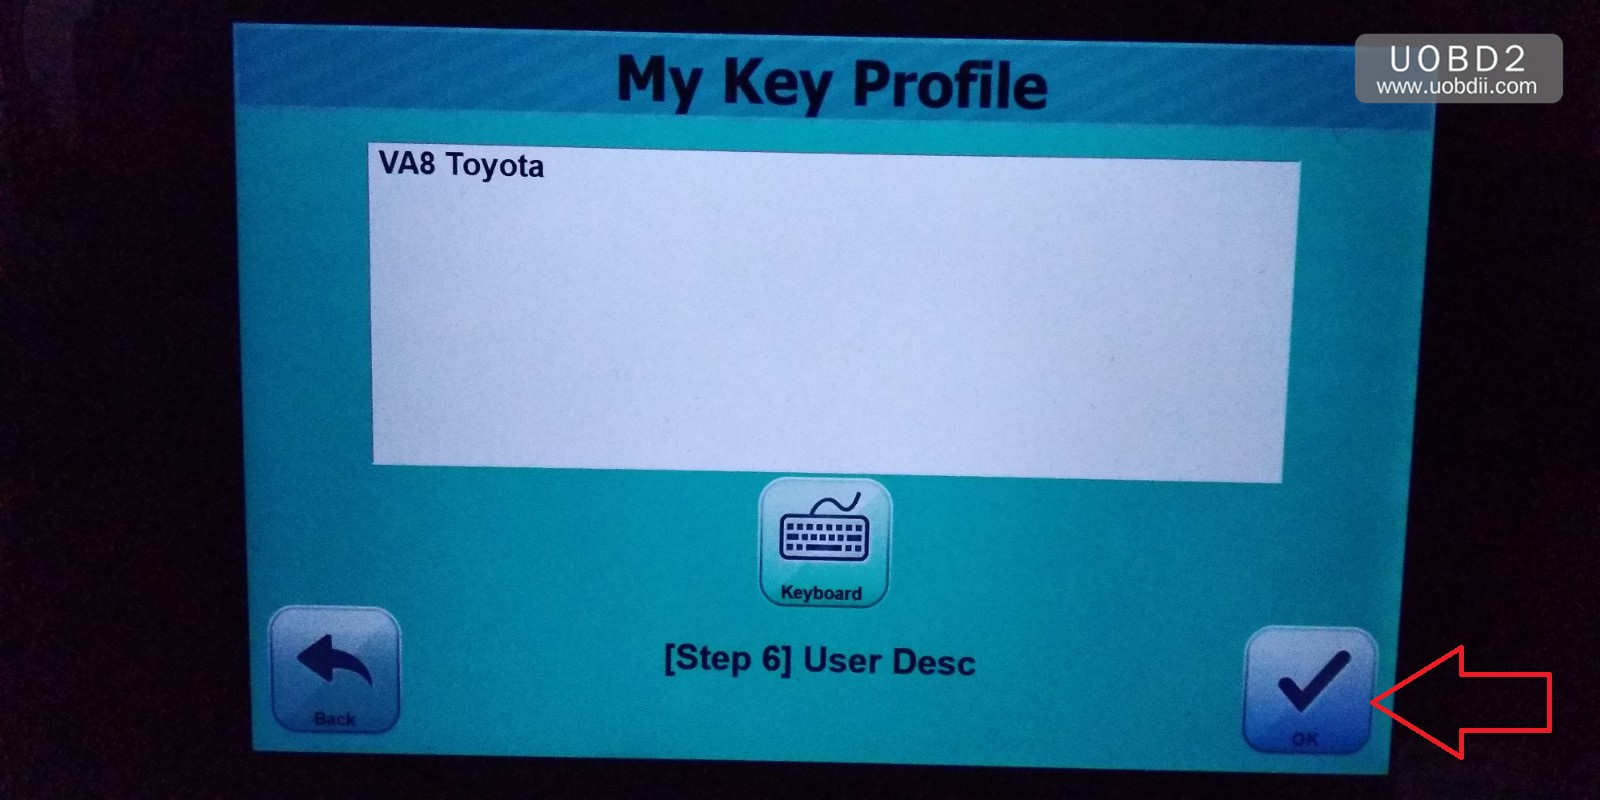 sec-e9z-create-new-key-for-va8-toyota-18